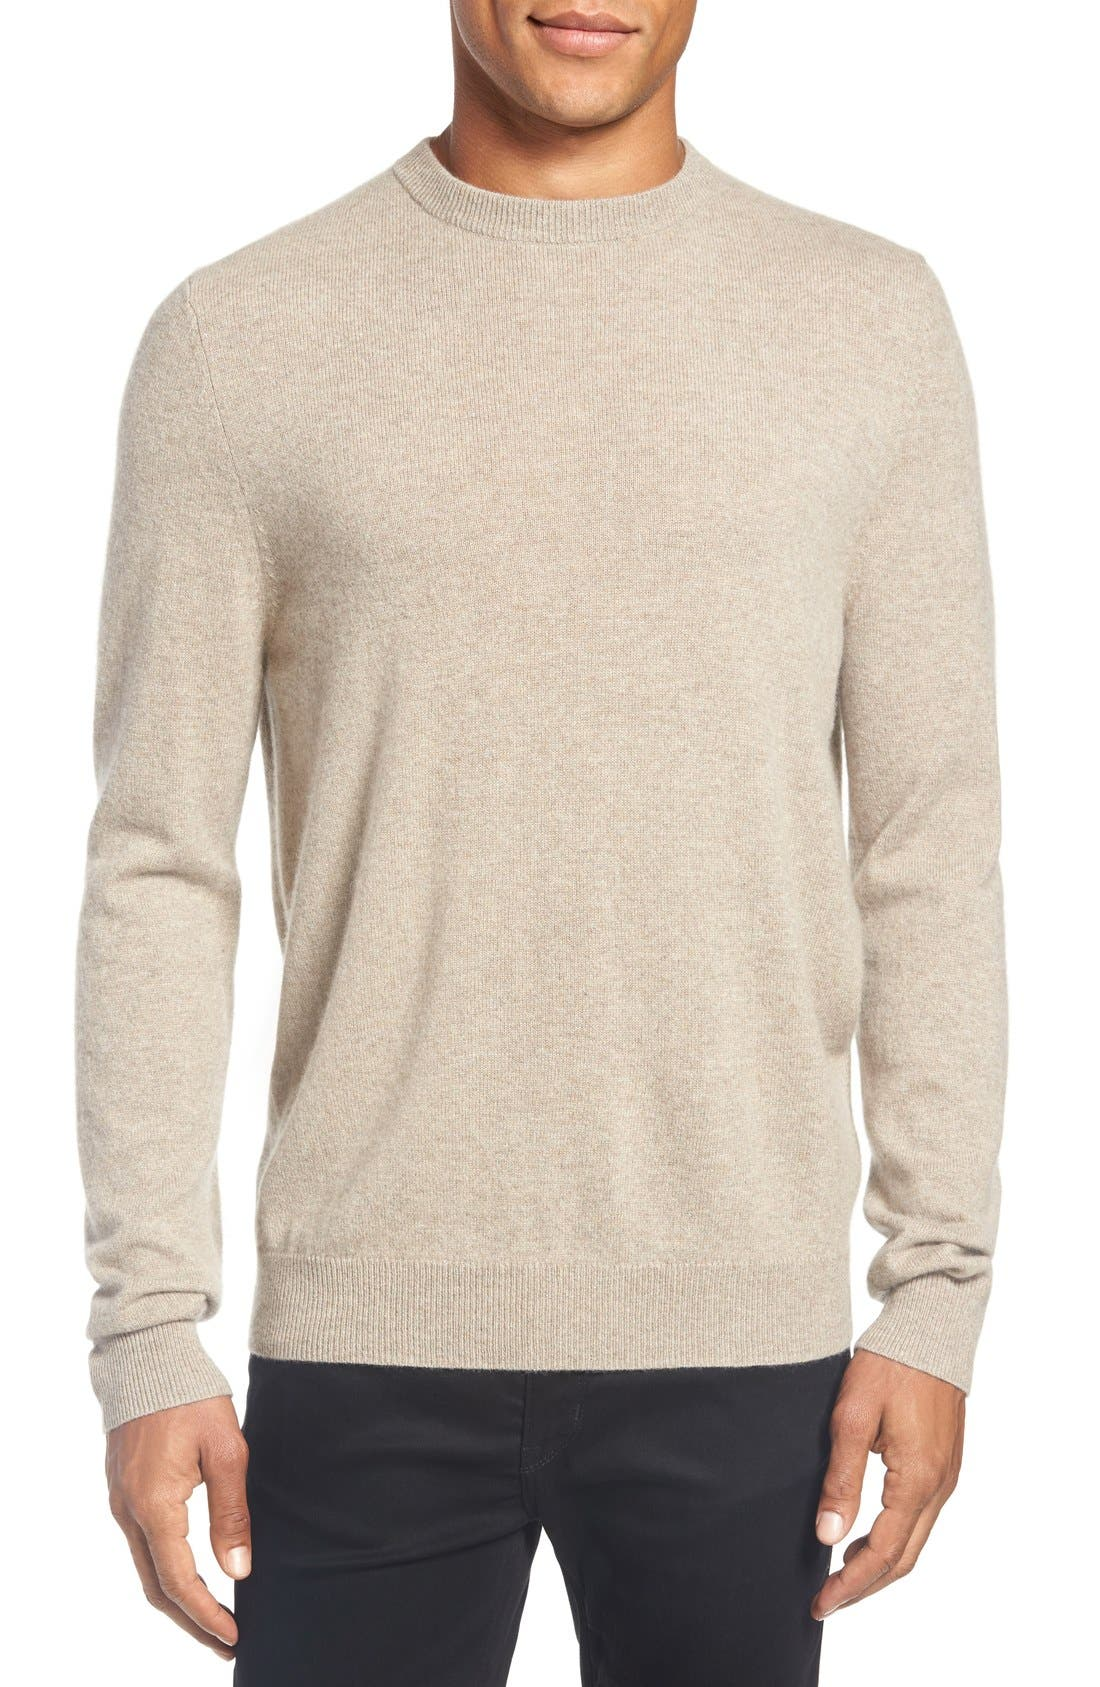 Nordstrom Men's Shop Cashmere Crewneck Sweater (Regular & Tall)